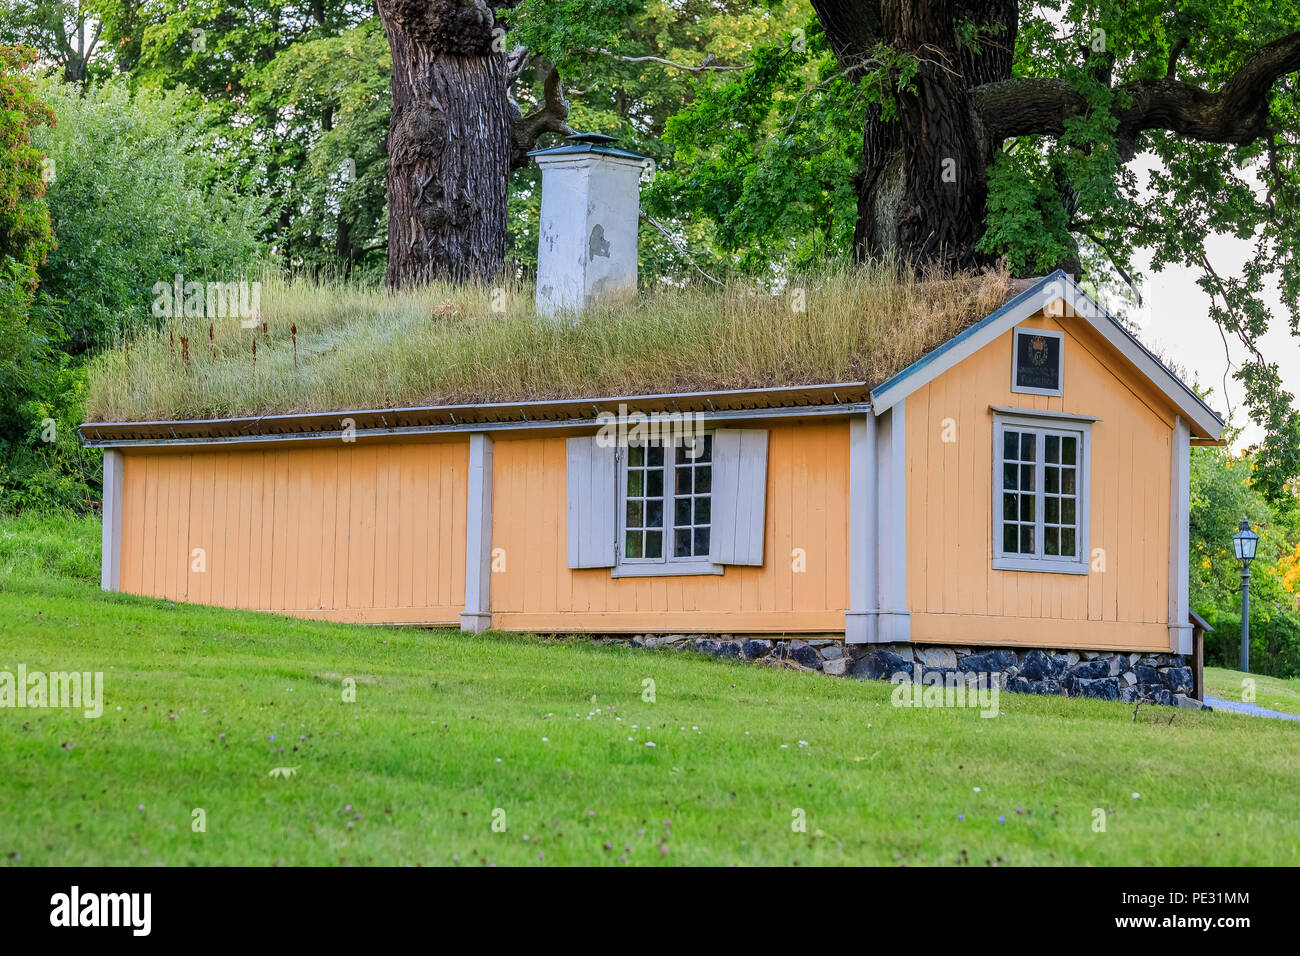 Stockholm, Sweden - August 10, 2017: Traditional Old Swedish house with a grass roof in a forest meadow - Stock Image